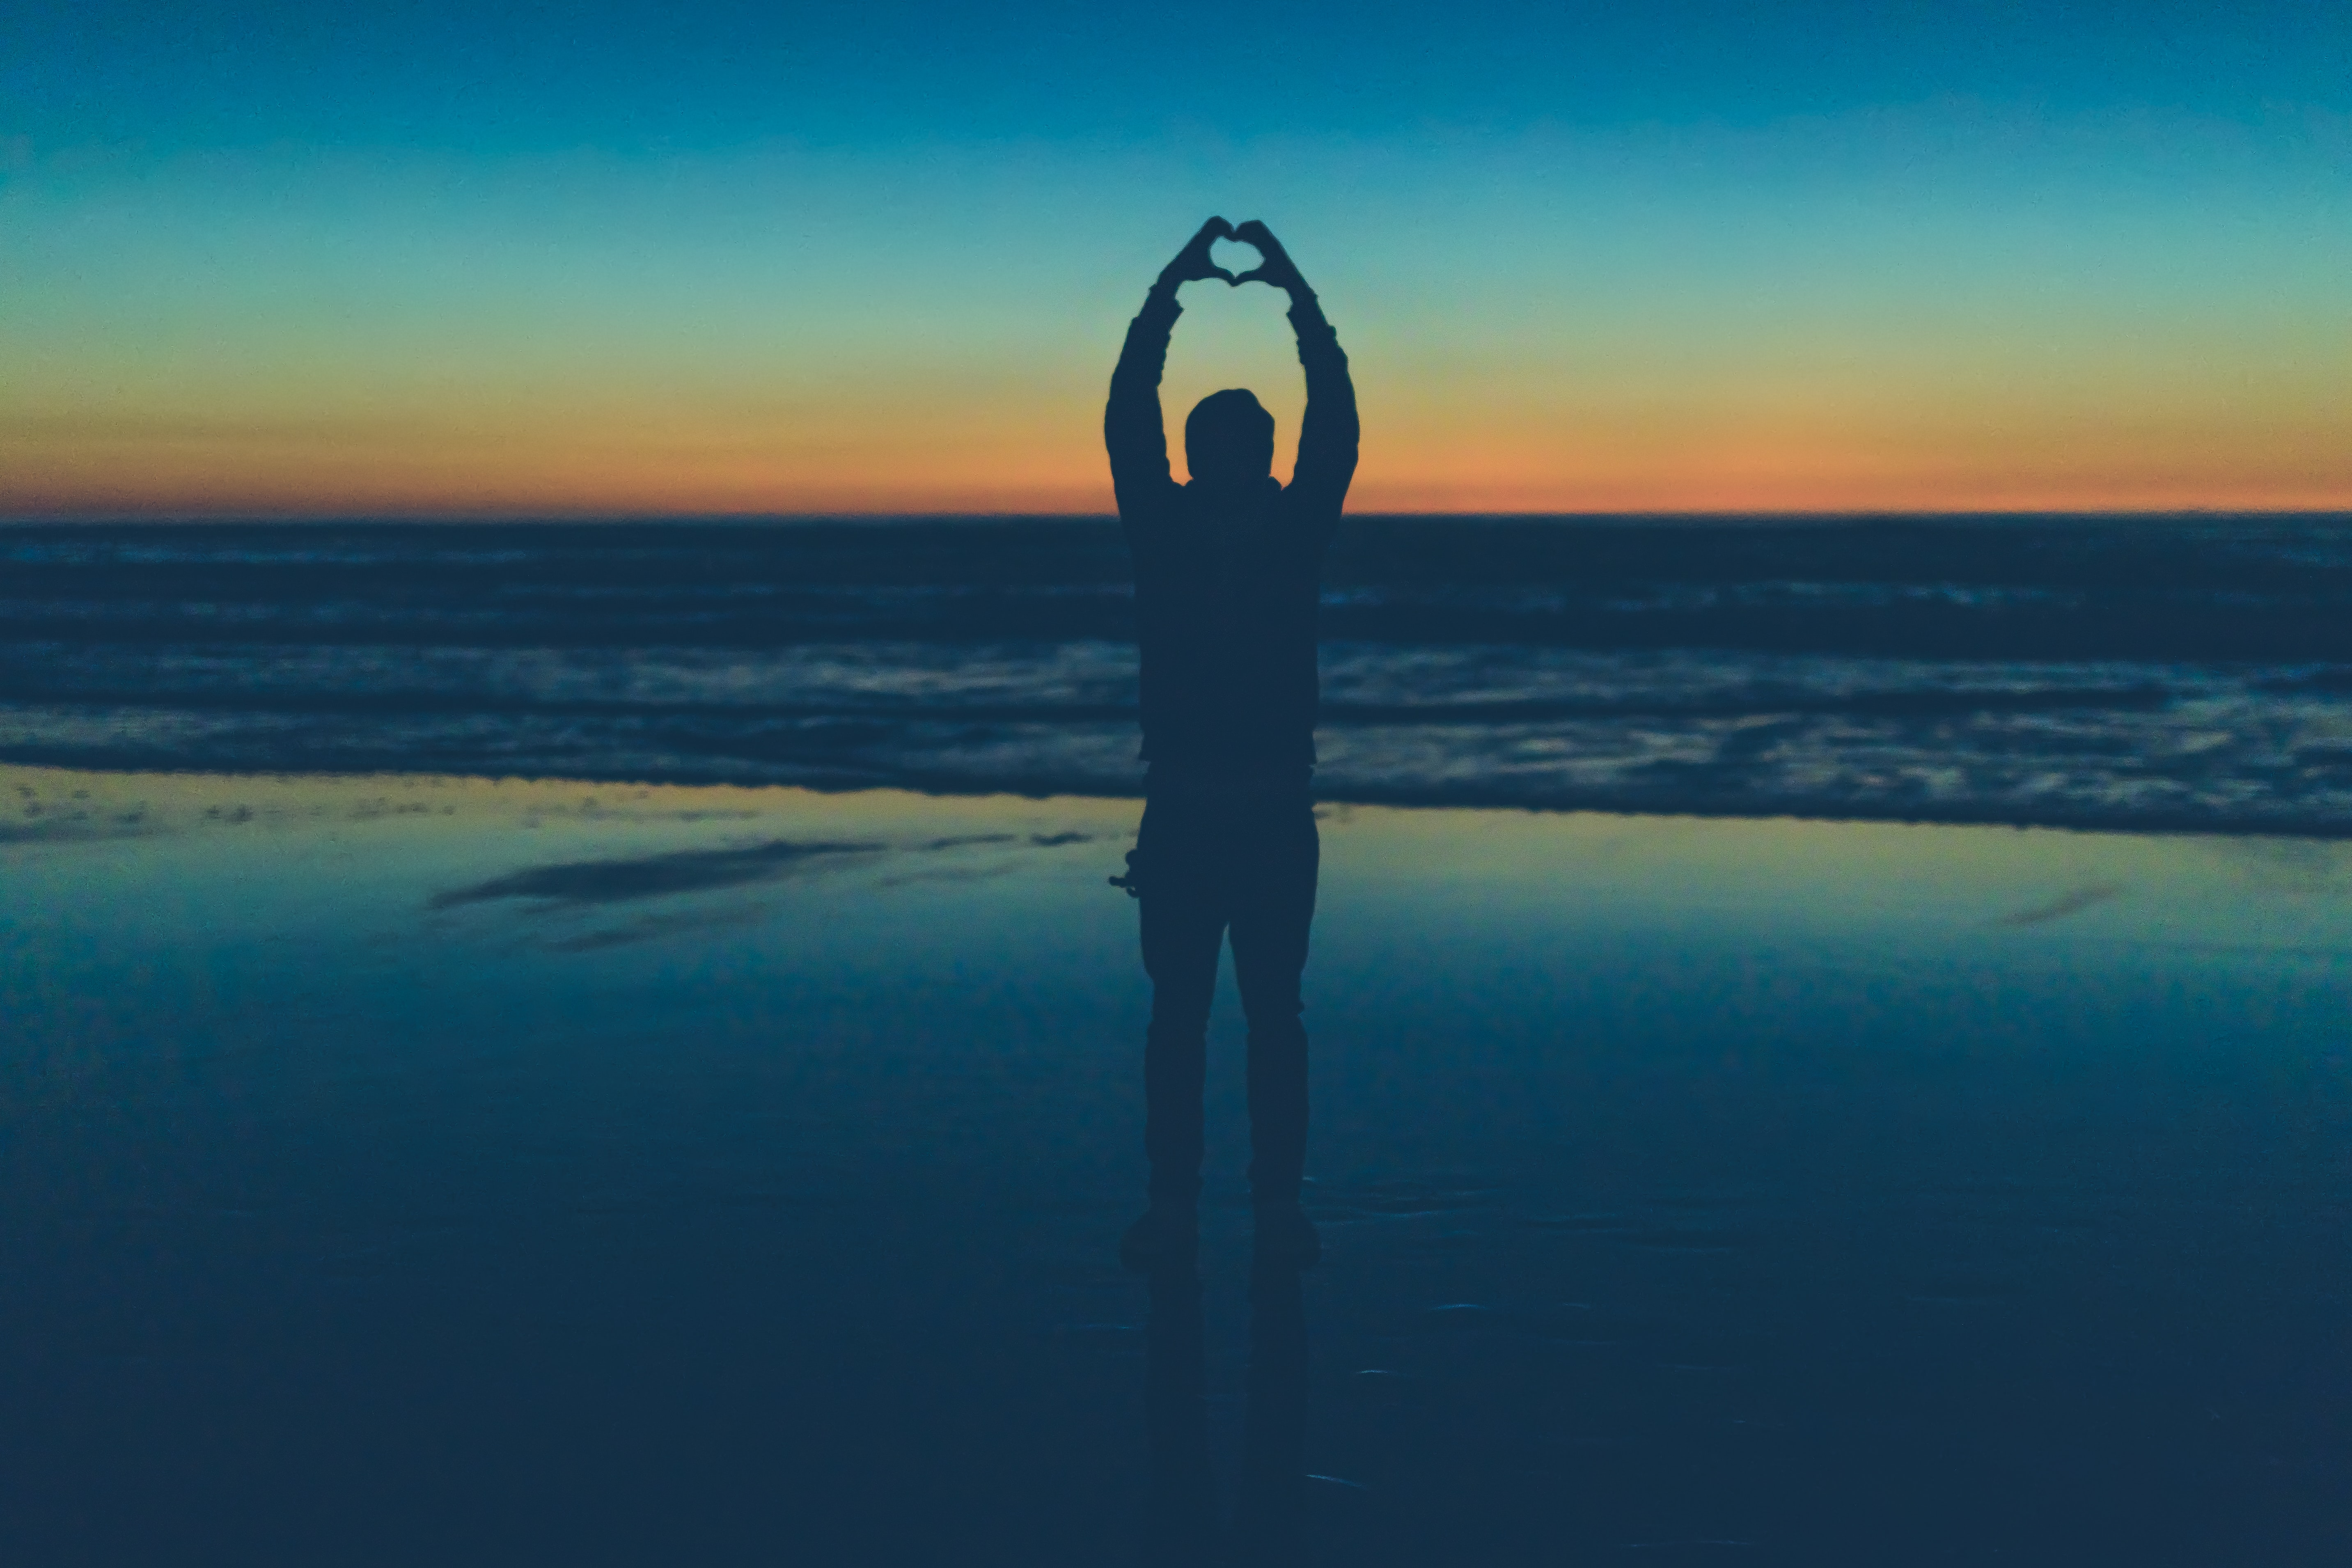 silhouette of person making heart sign near seashore